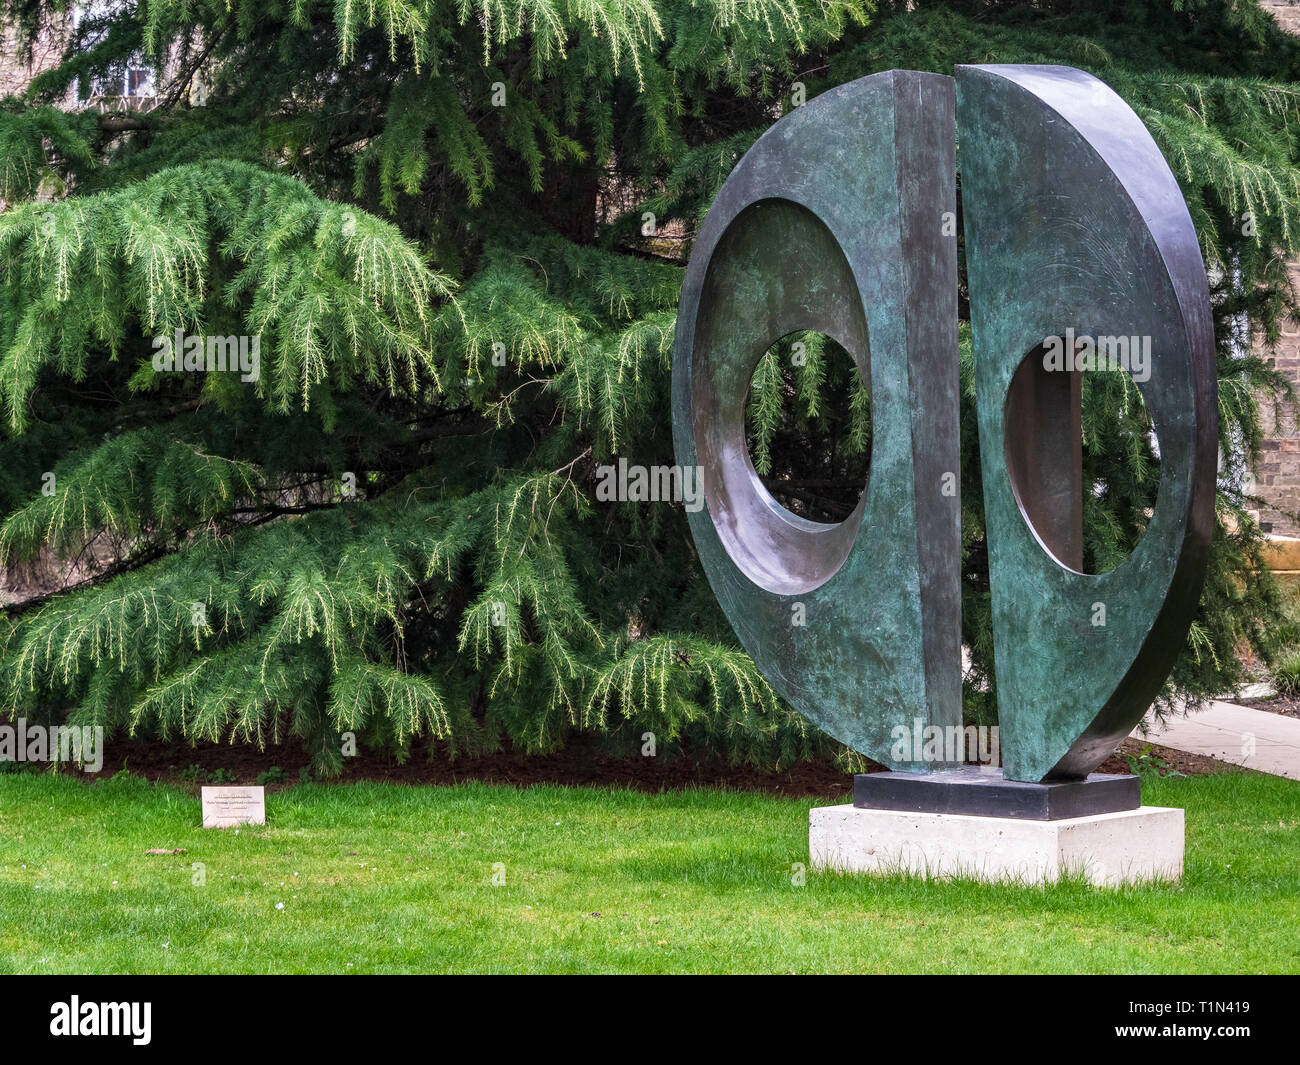 Barbara Hepworth Sculpture Two Forms (Divided Circle) by British sculptor Dame Barbara Hepworth (1903-75) in the grounds of Downing College Cambridge - Stock Image